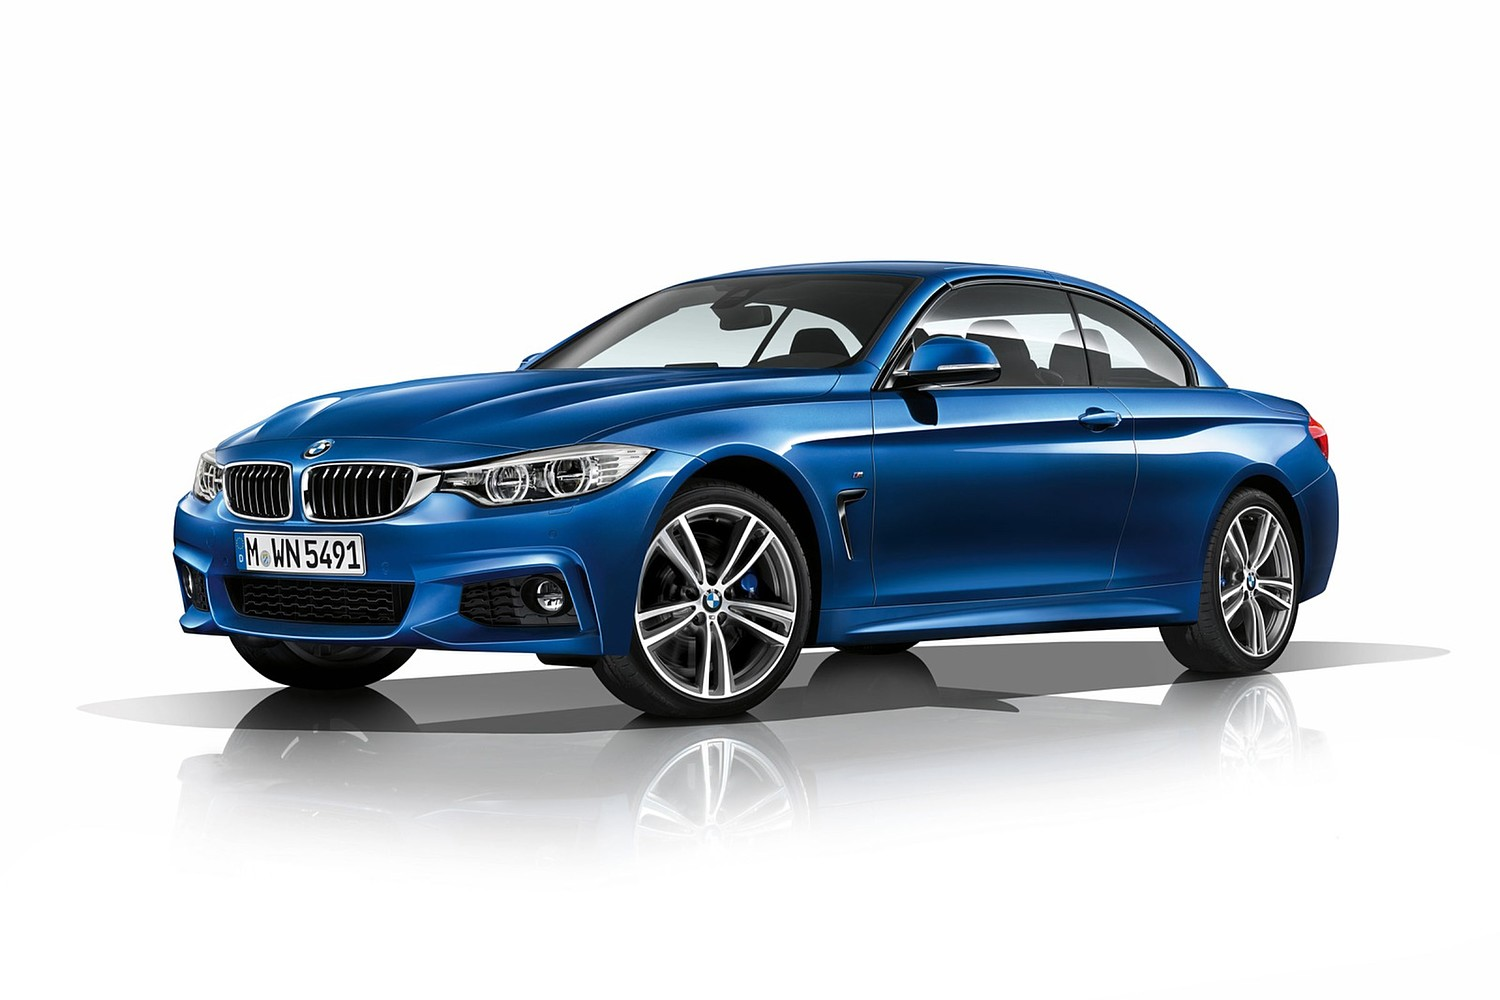 2017 BMW 4 Series 440i Convertible Exterior. M Sport Package Shown.